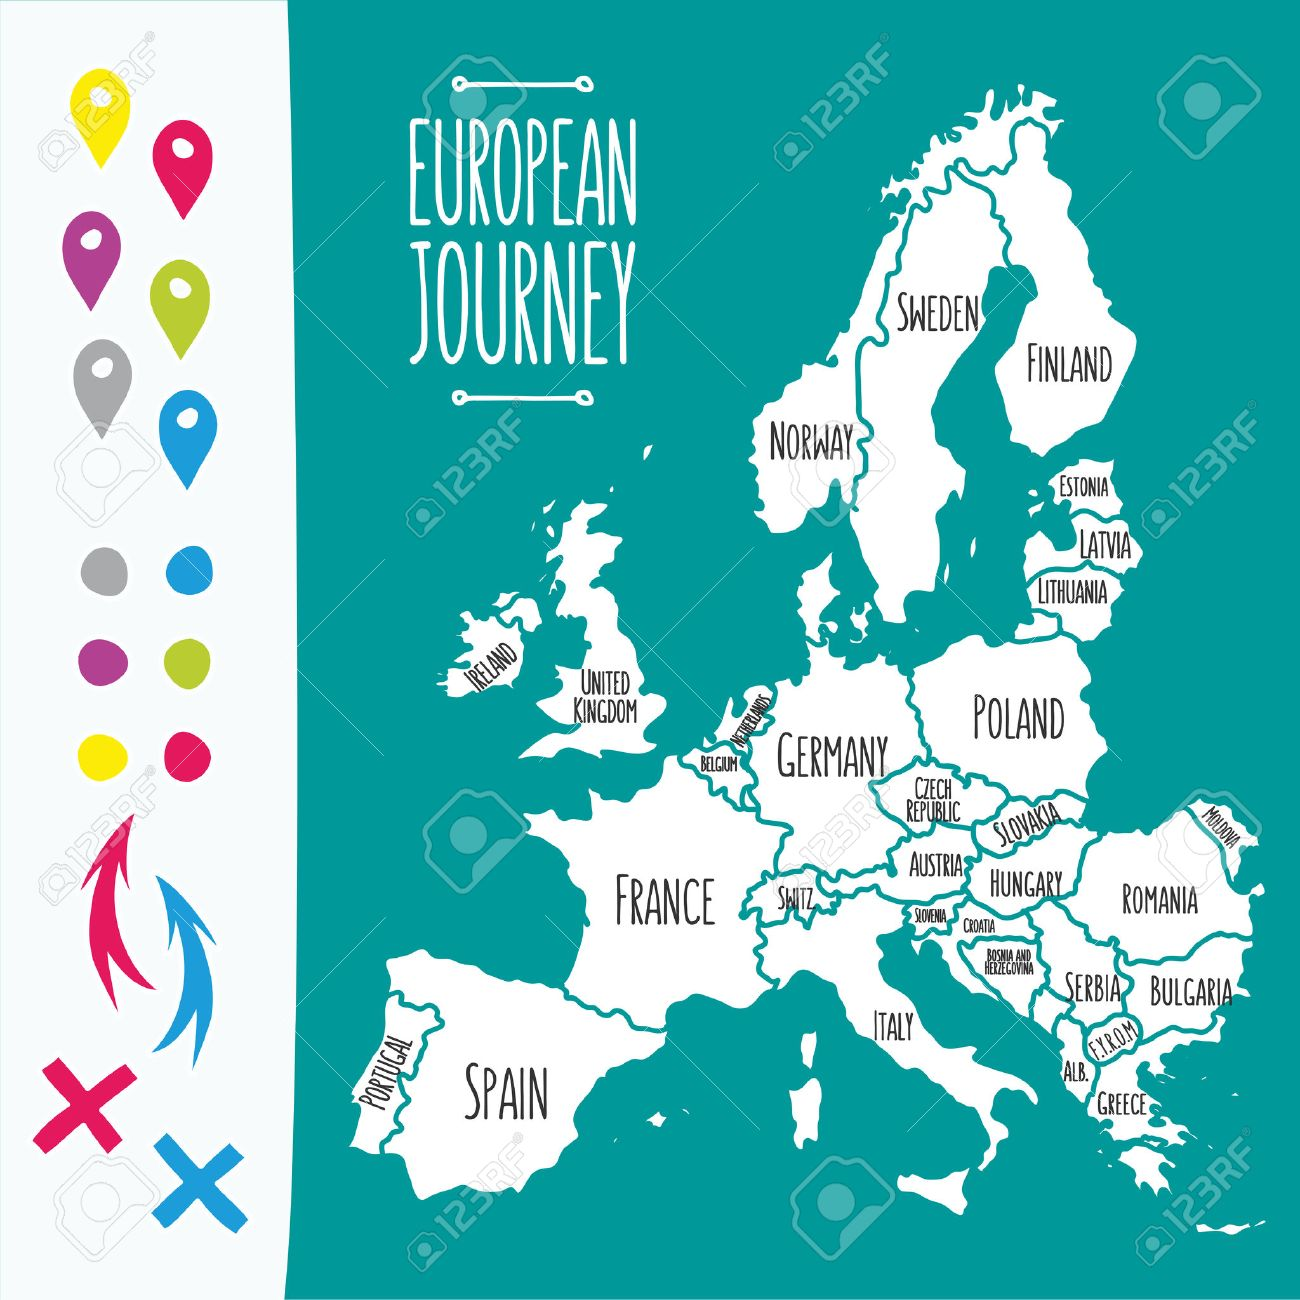 Vintage Hand Drawn Europe Travel Map With Pins Vector Illustration – Travel Maps Of Europe